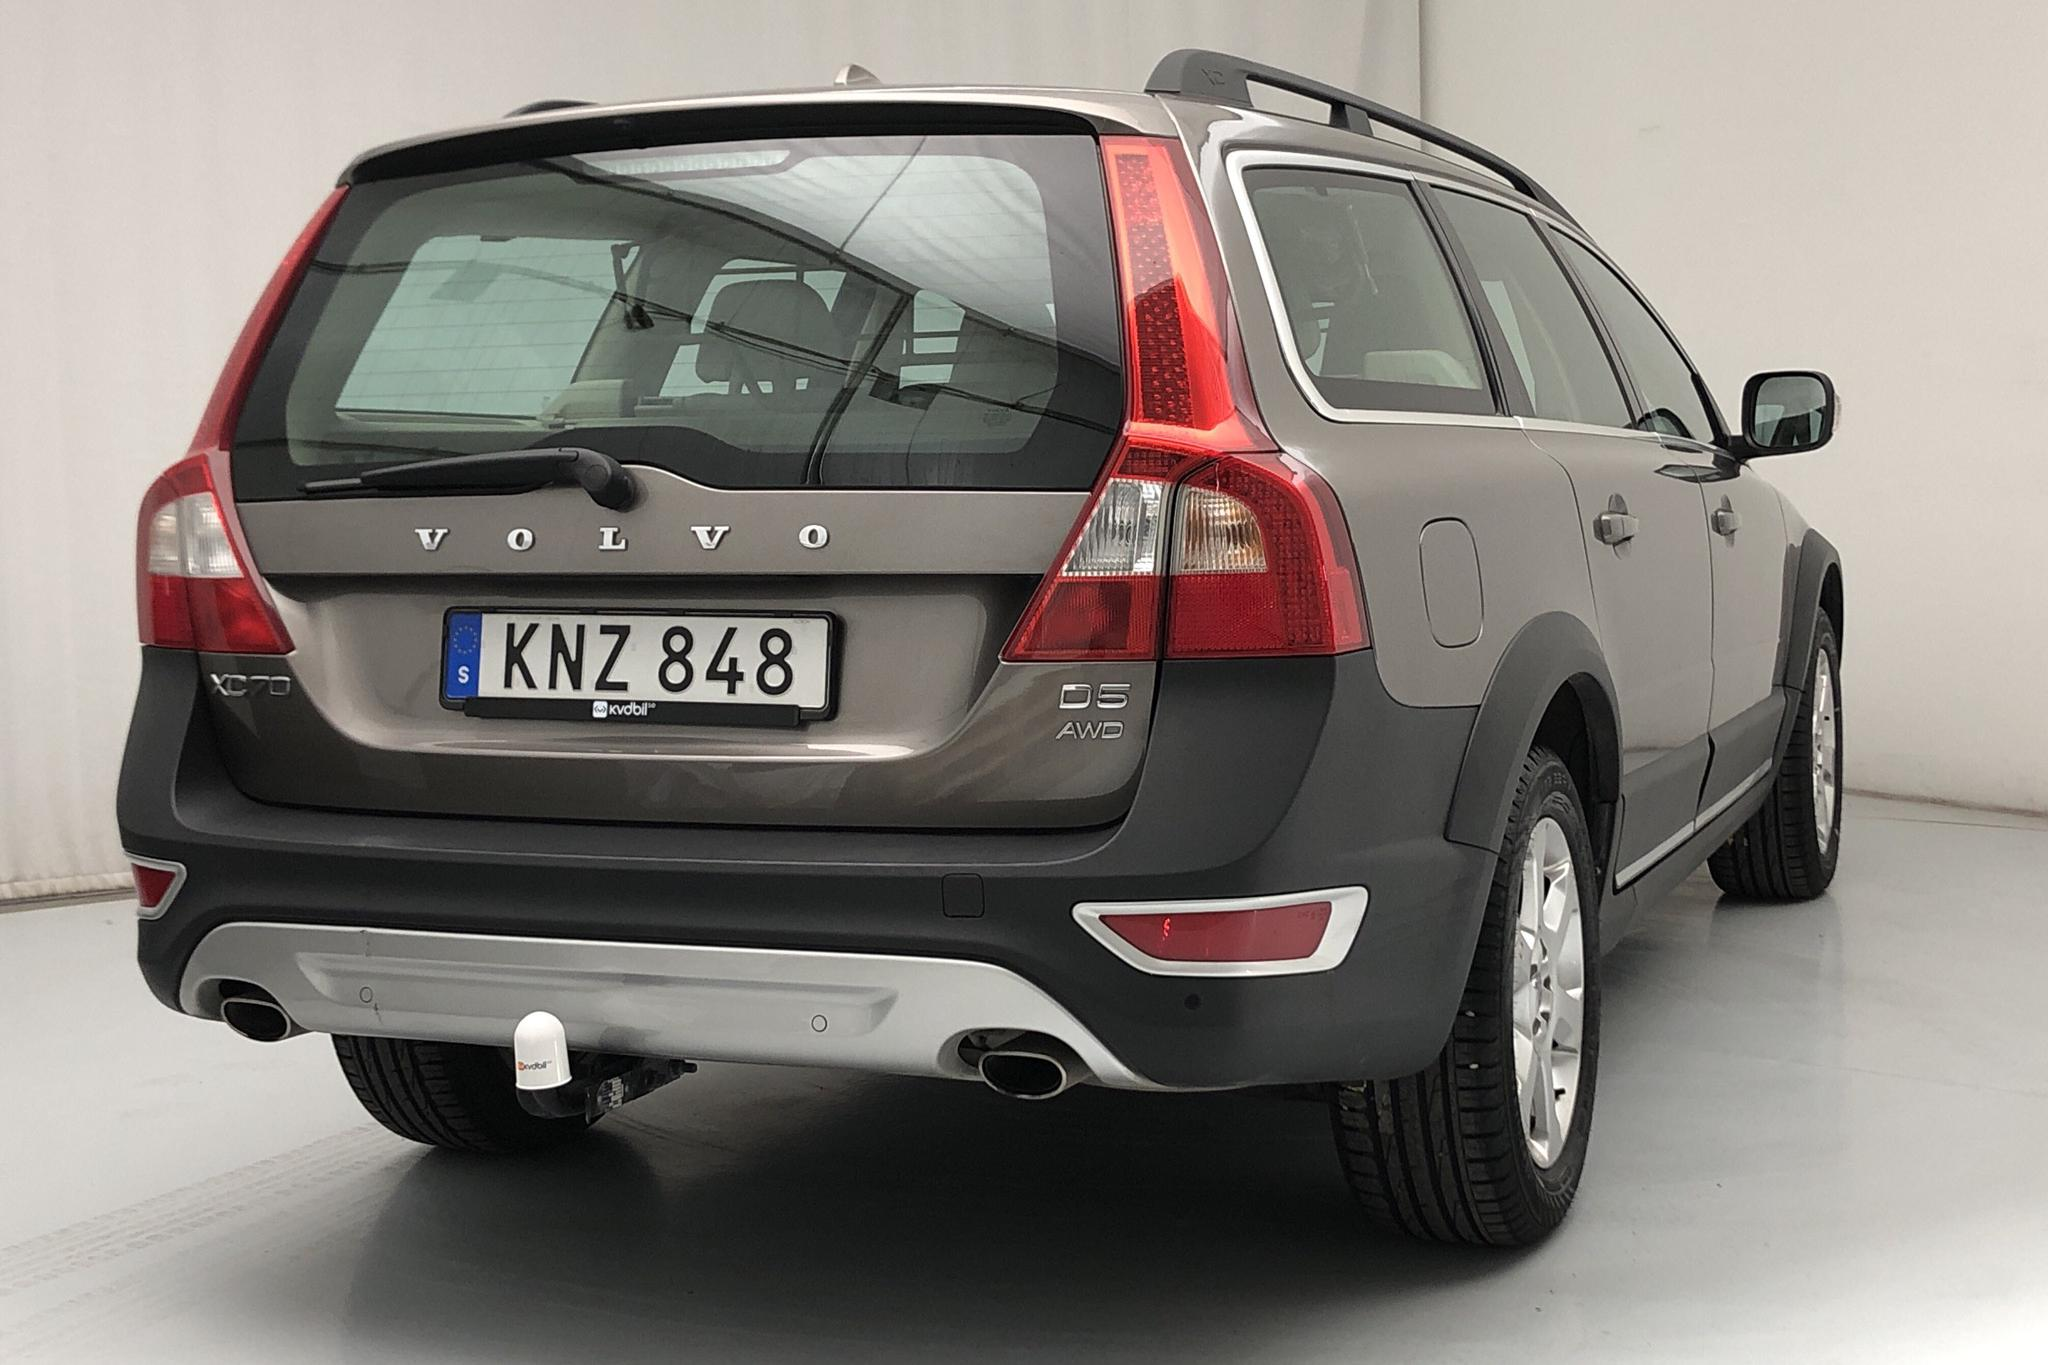 Volvo XC70 II D5 AWD (205hk) - 121 170 km - Automatic - brown - 2011